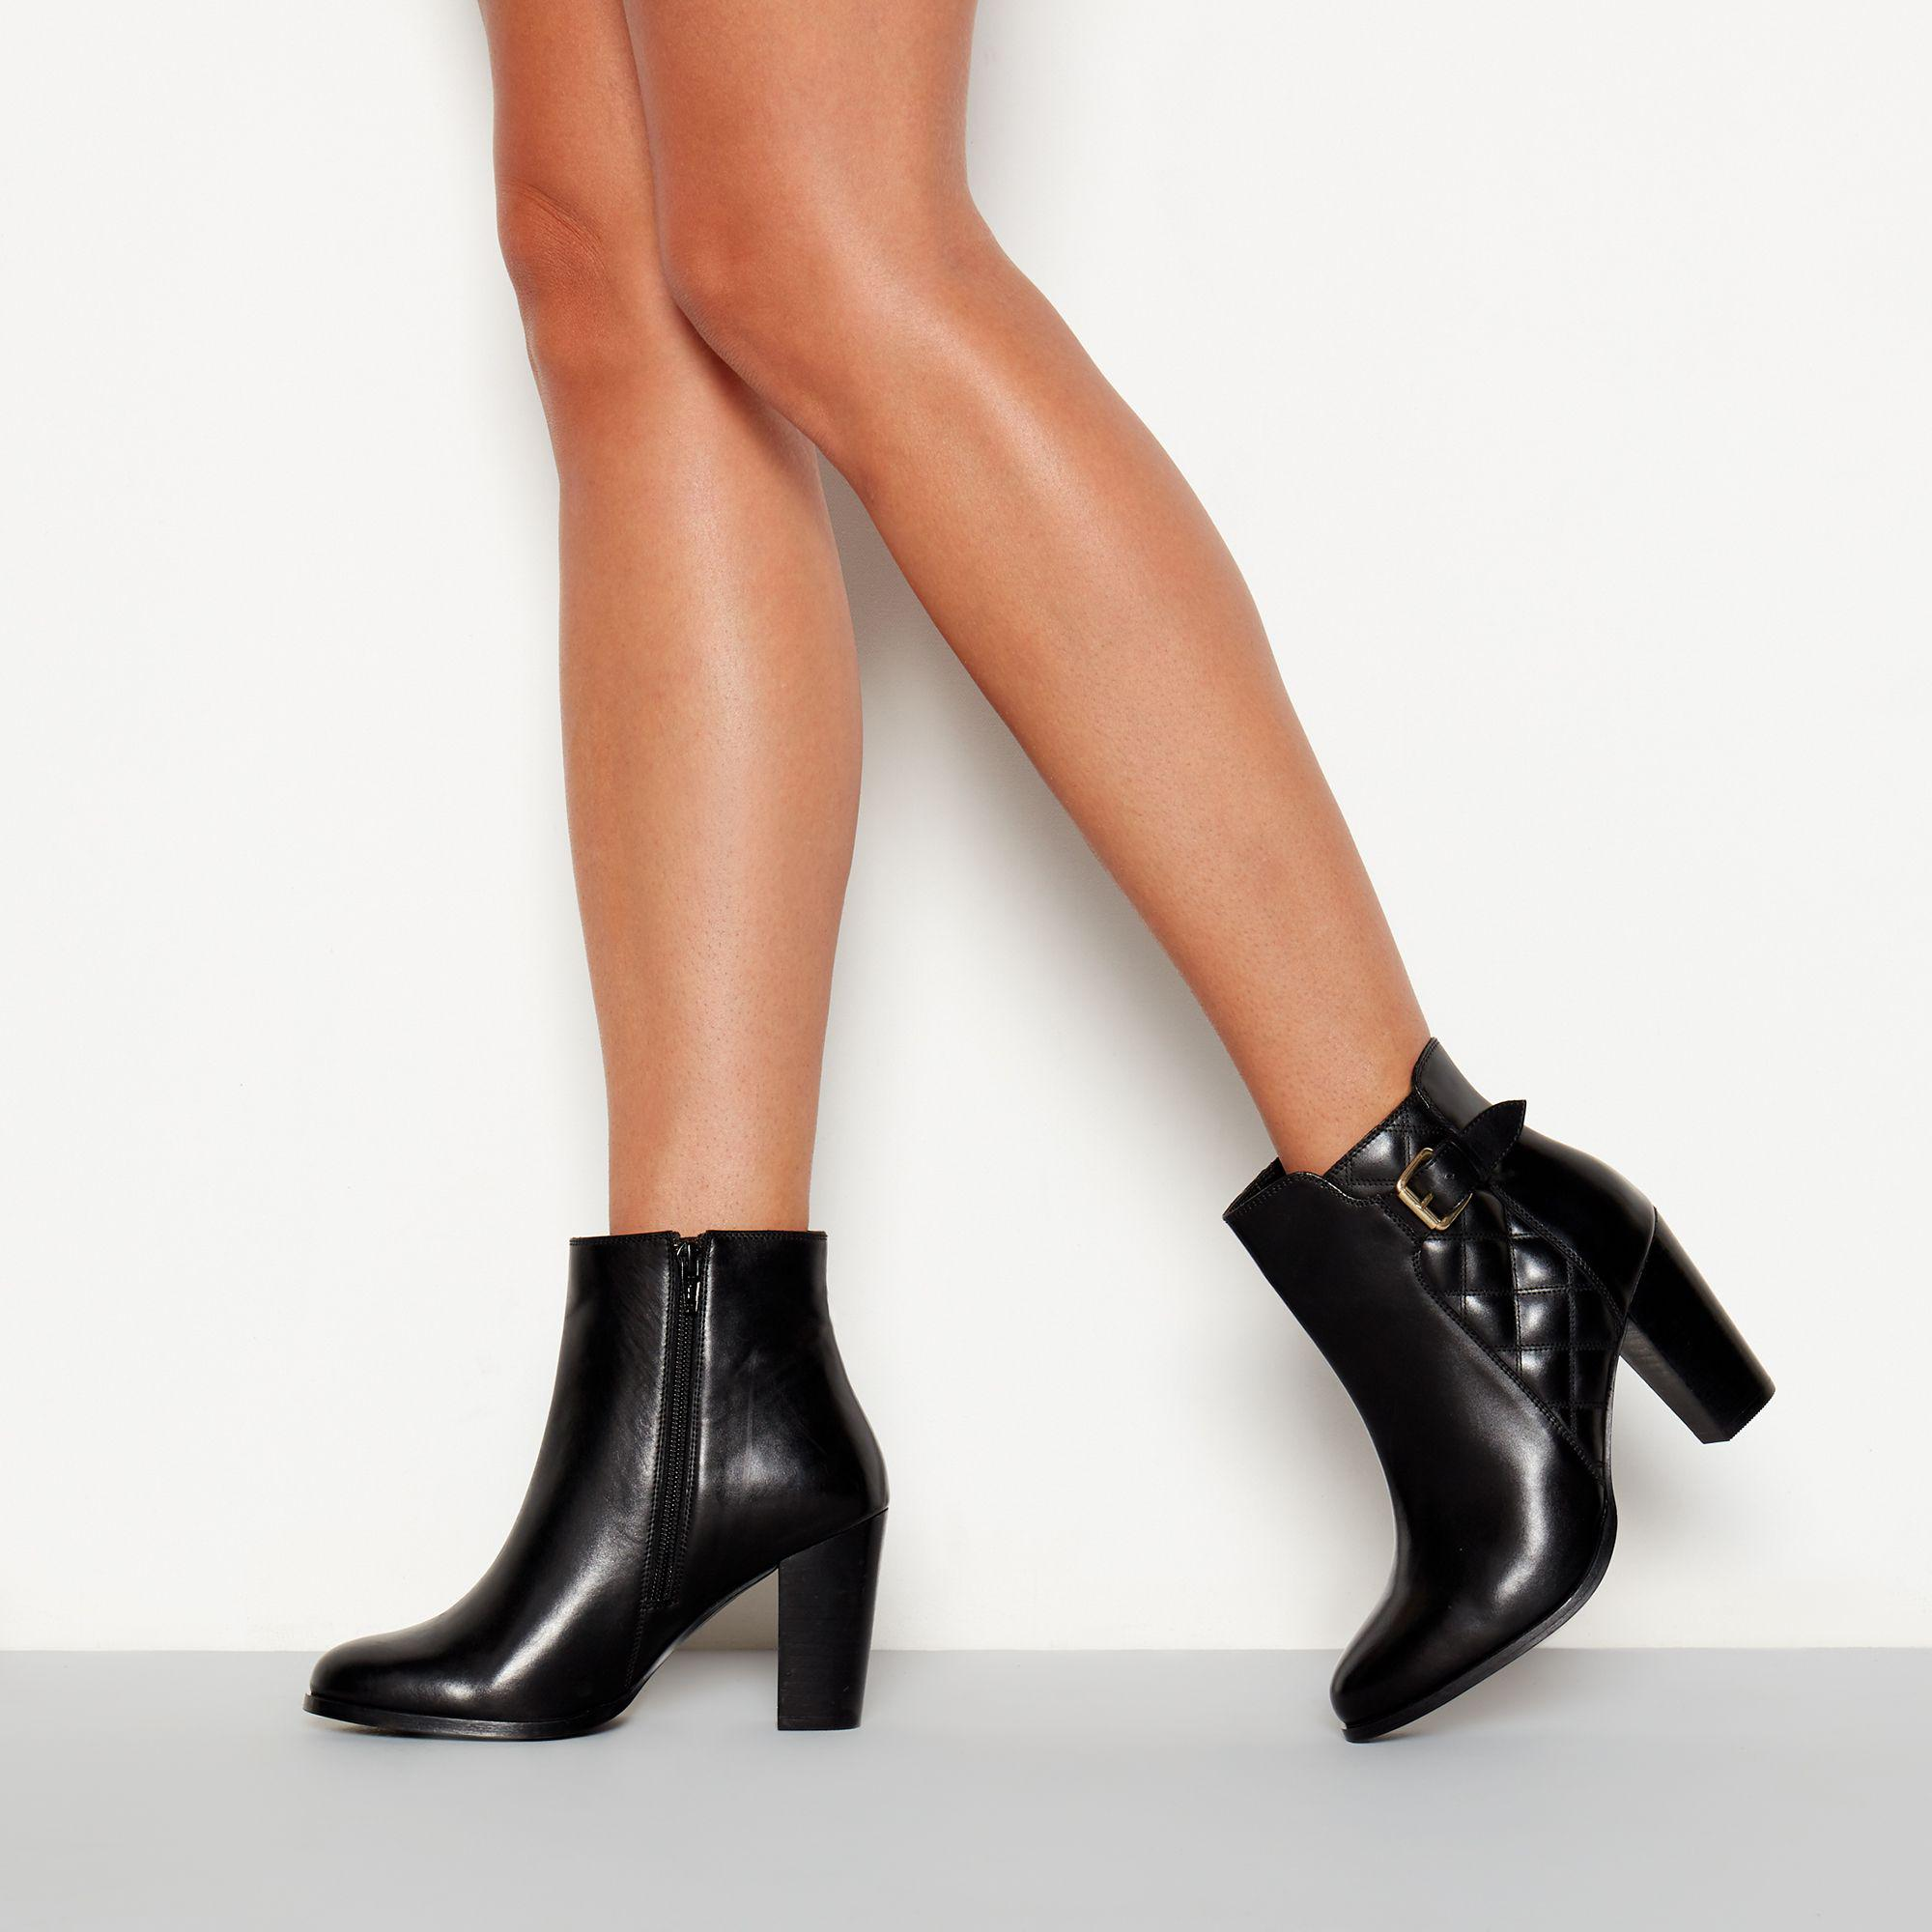 5b5f505871 Faith Black Quilted Leather 'brooksie' High Block Heel Ankle Boots ...